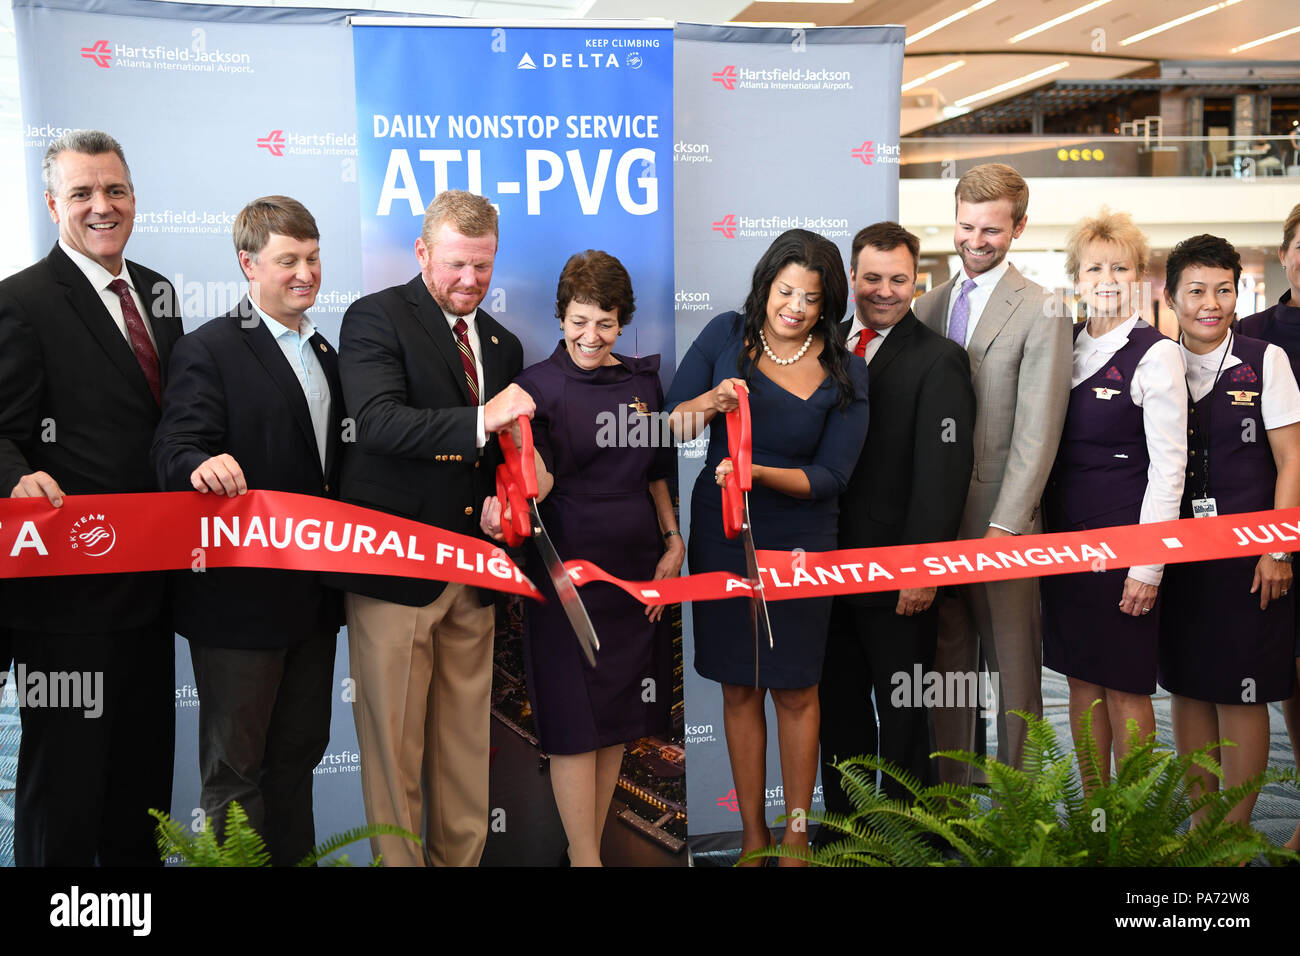 Atlanta, USA. 20th July, 2018. Guests cut the ribbon at the inaugural flight ceremony at Hartsfield-Jackson Atlanta International Airport in Atlanta, the United States, July 20, 2018. U.S. airline giant Delta Air Line relaunched a non-stop flight route Friday between Atlanta, state of Georgia, and China's Shanghai. Credit: Liu Jie/Xinhua/Alamy Live News - Stock Image